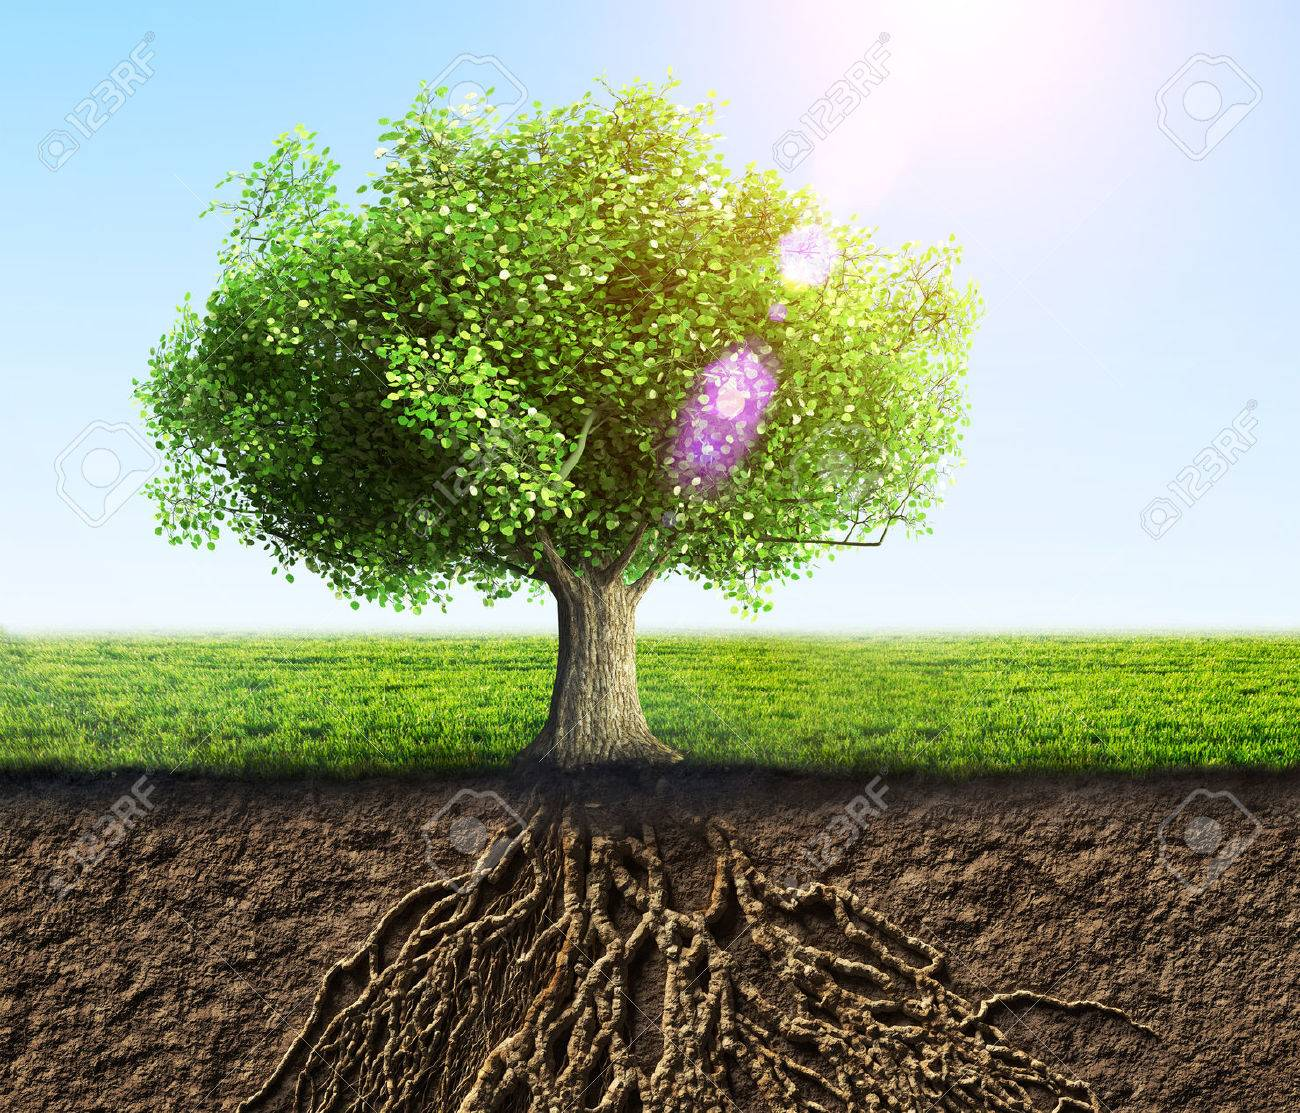 35362381-tree-with-roots-and-soil.jpg